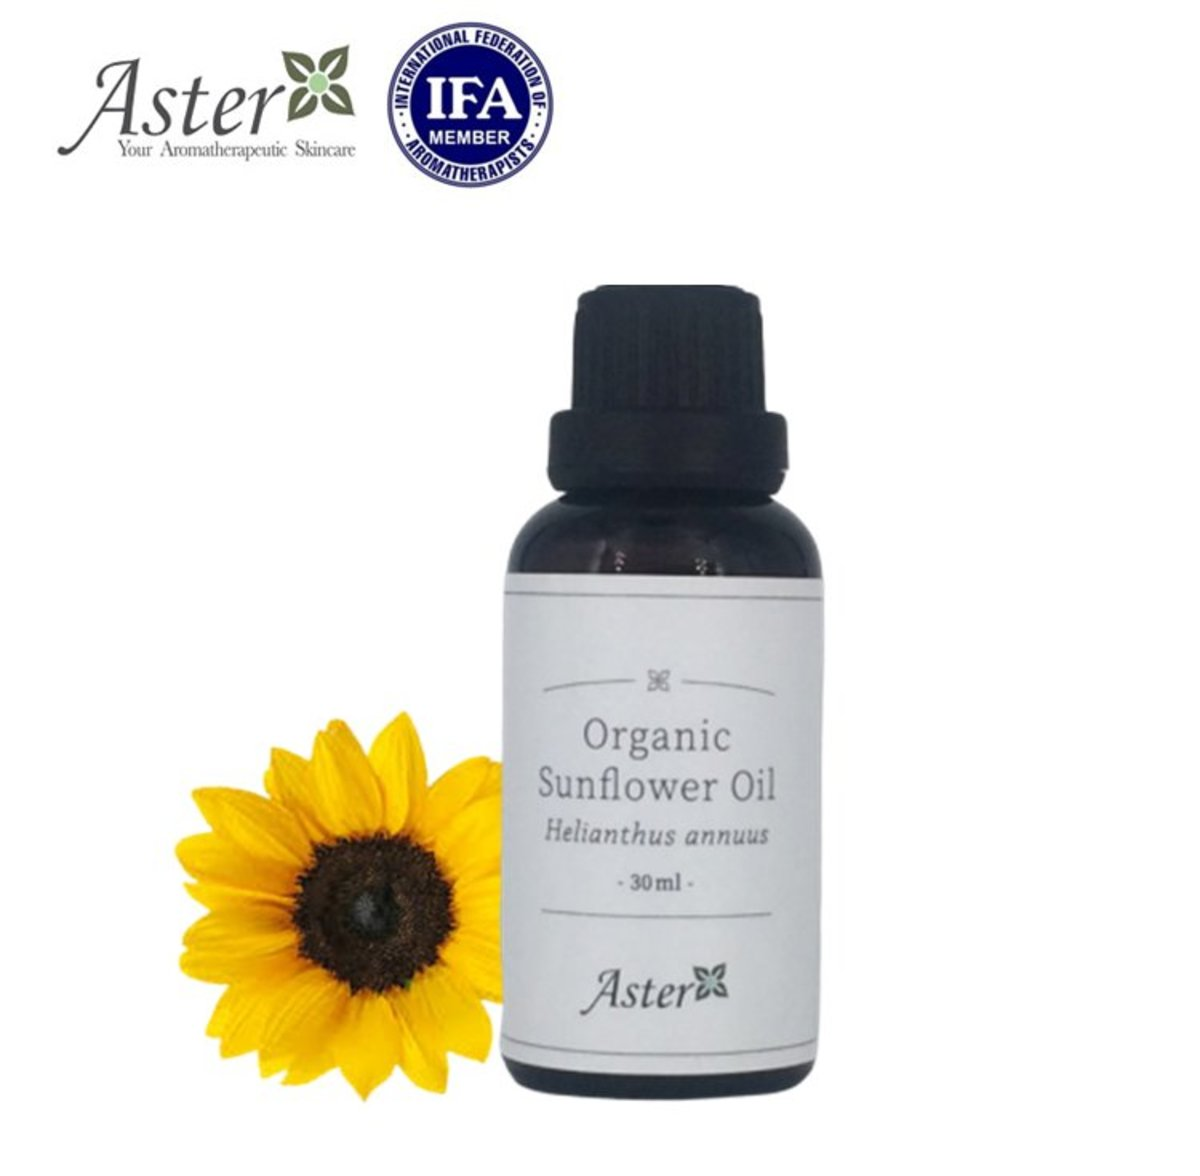 有機葵花籽油 (Helianthus Annuus) - 100ml